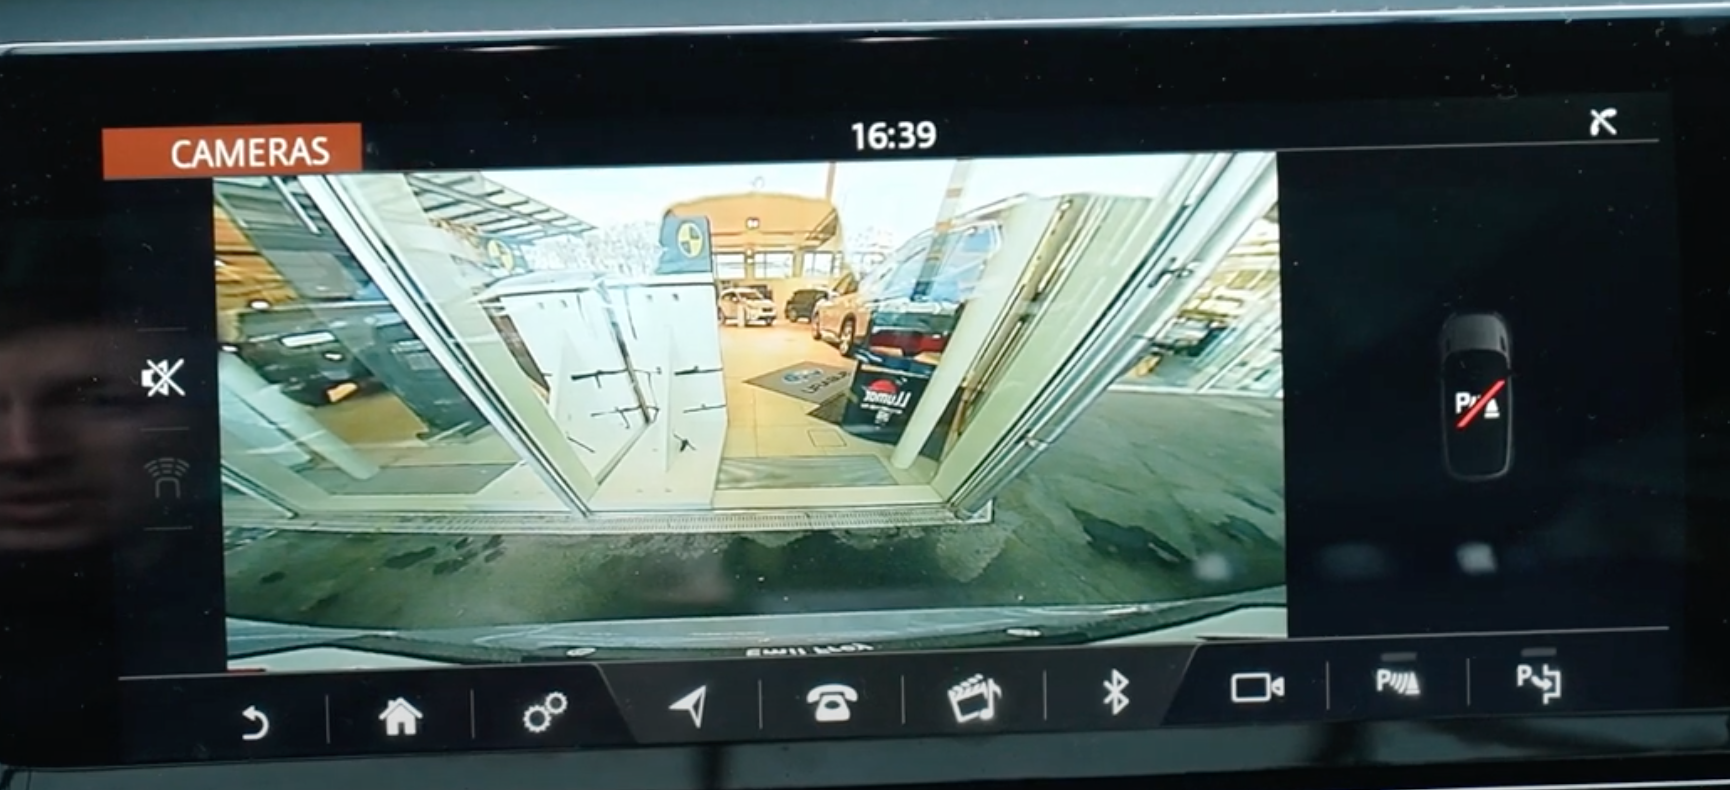 Rearview camera view on the infotainment display